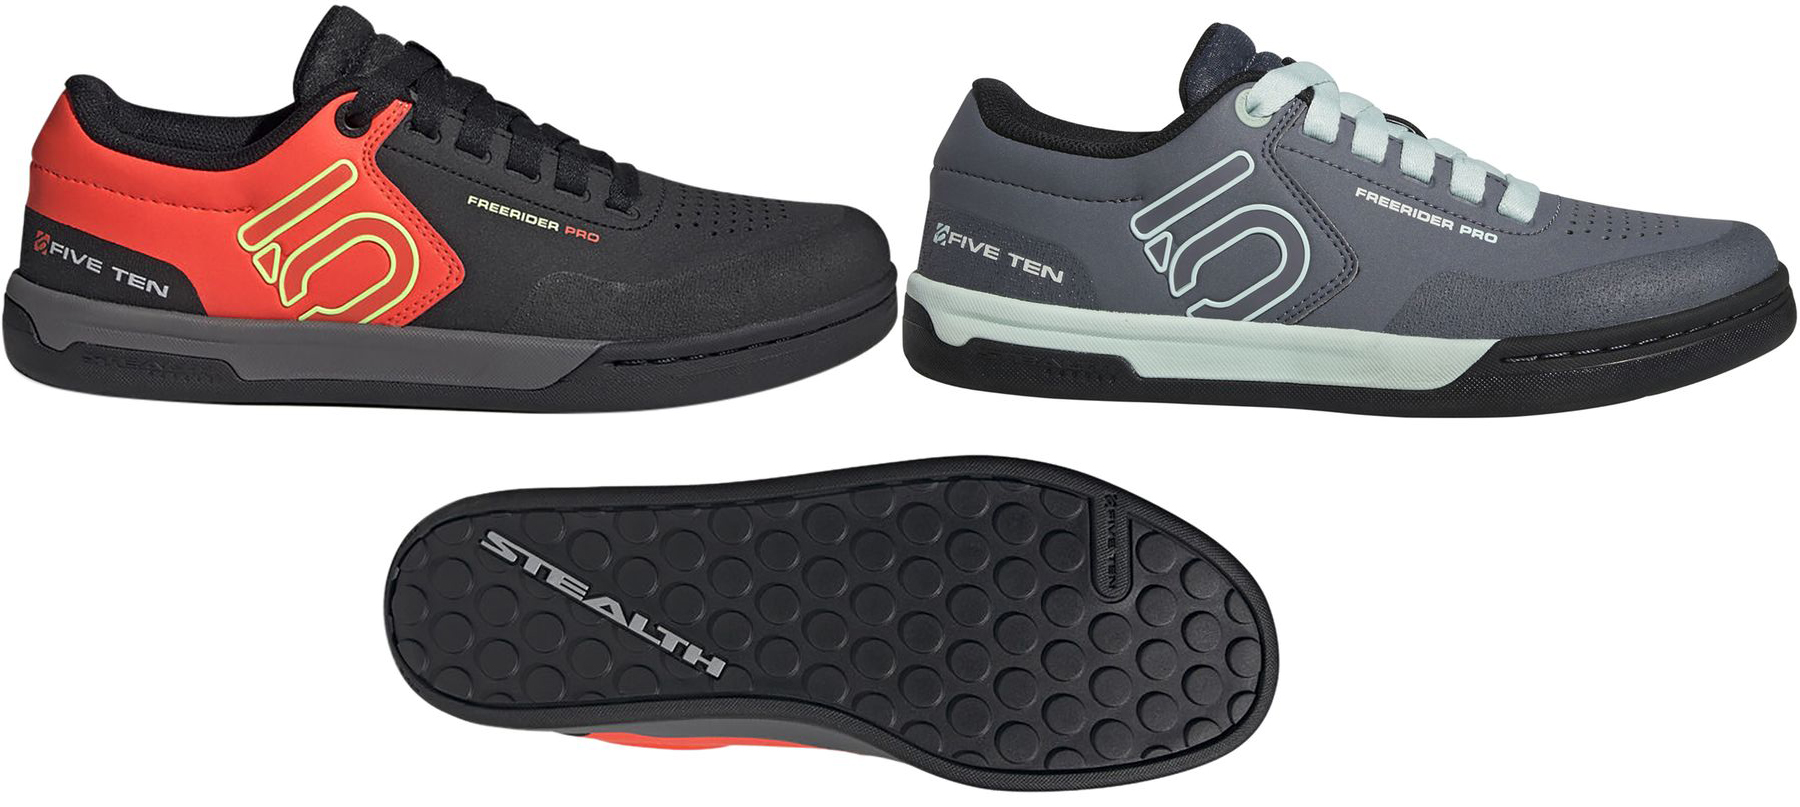 FiveTen Freerider Pro cycling shoe